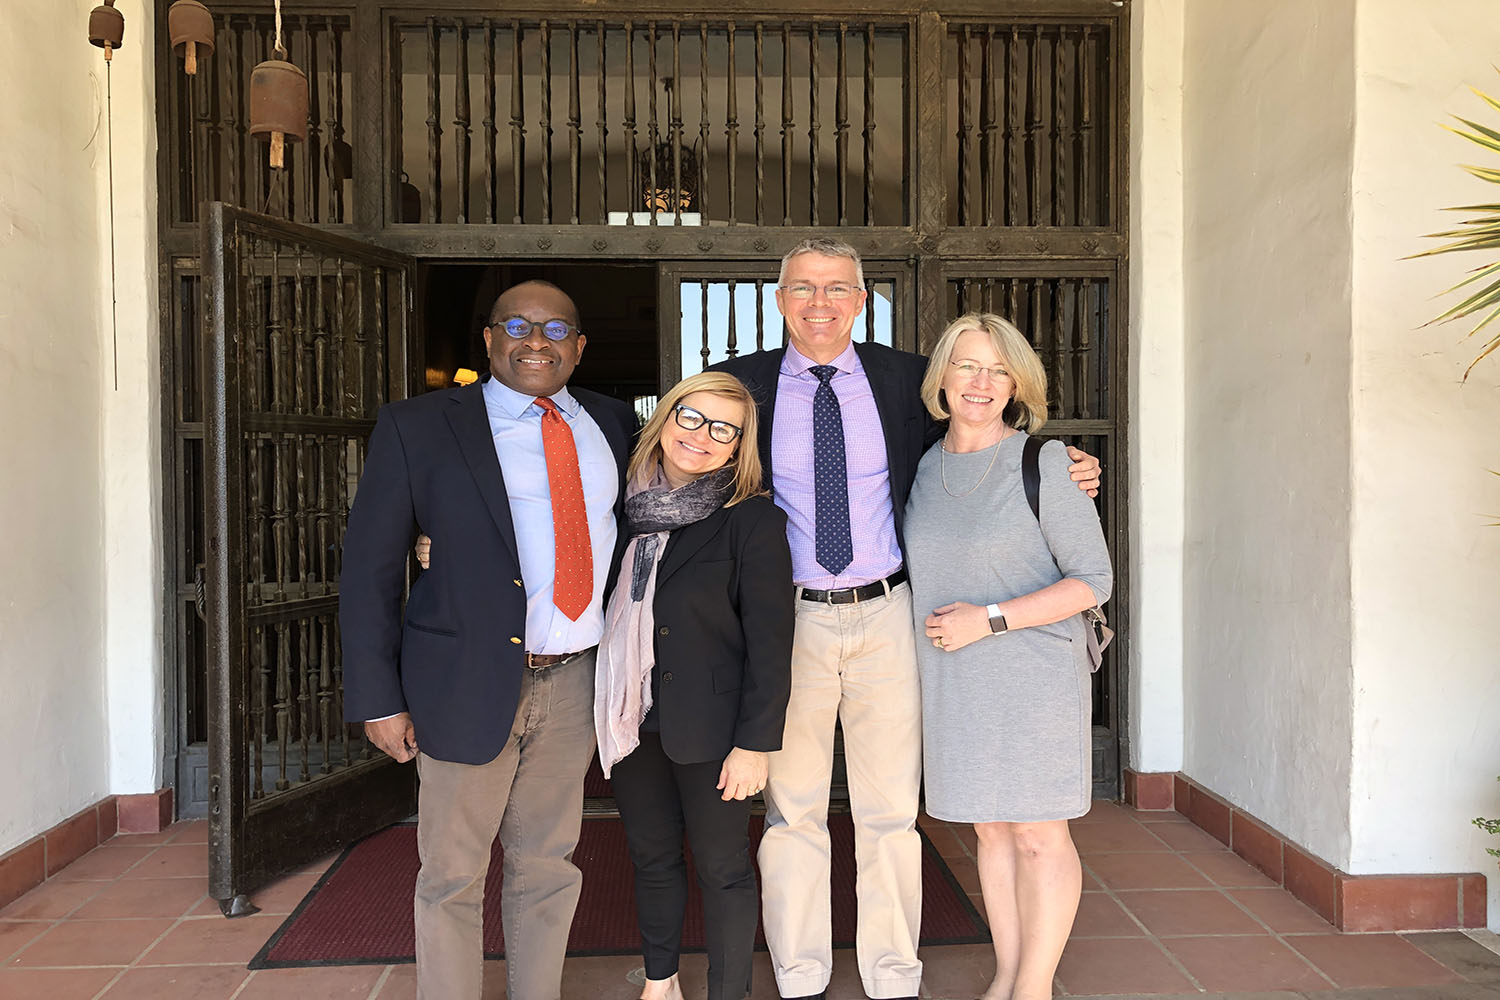 Members of the Independent Schools Association of Southern Africa pose with Assistant Head of School and Middle School Director Karen Pavliscak. The group was